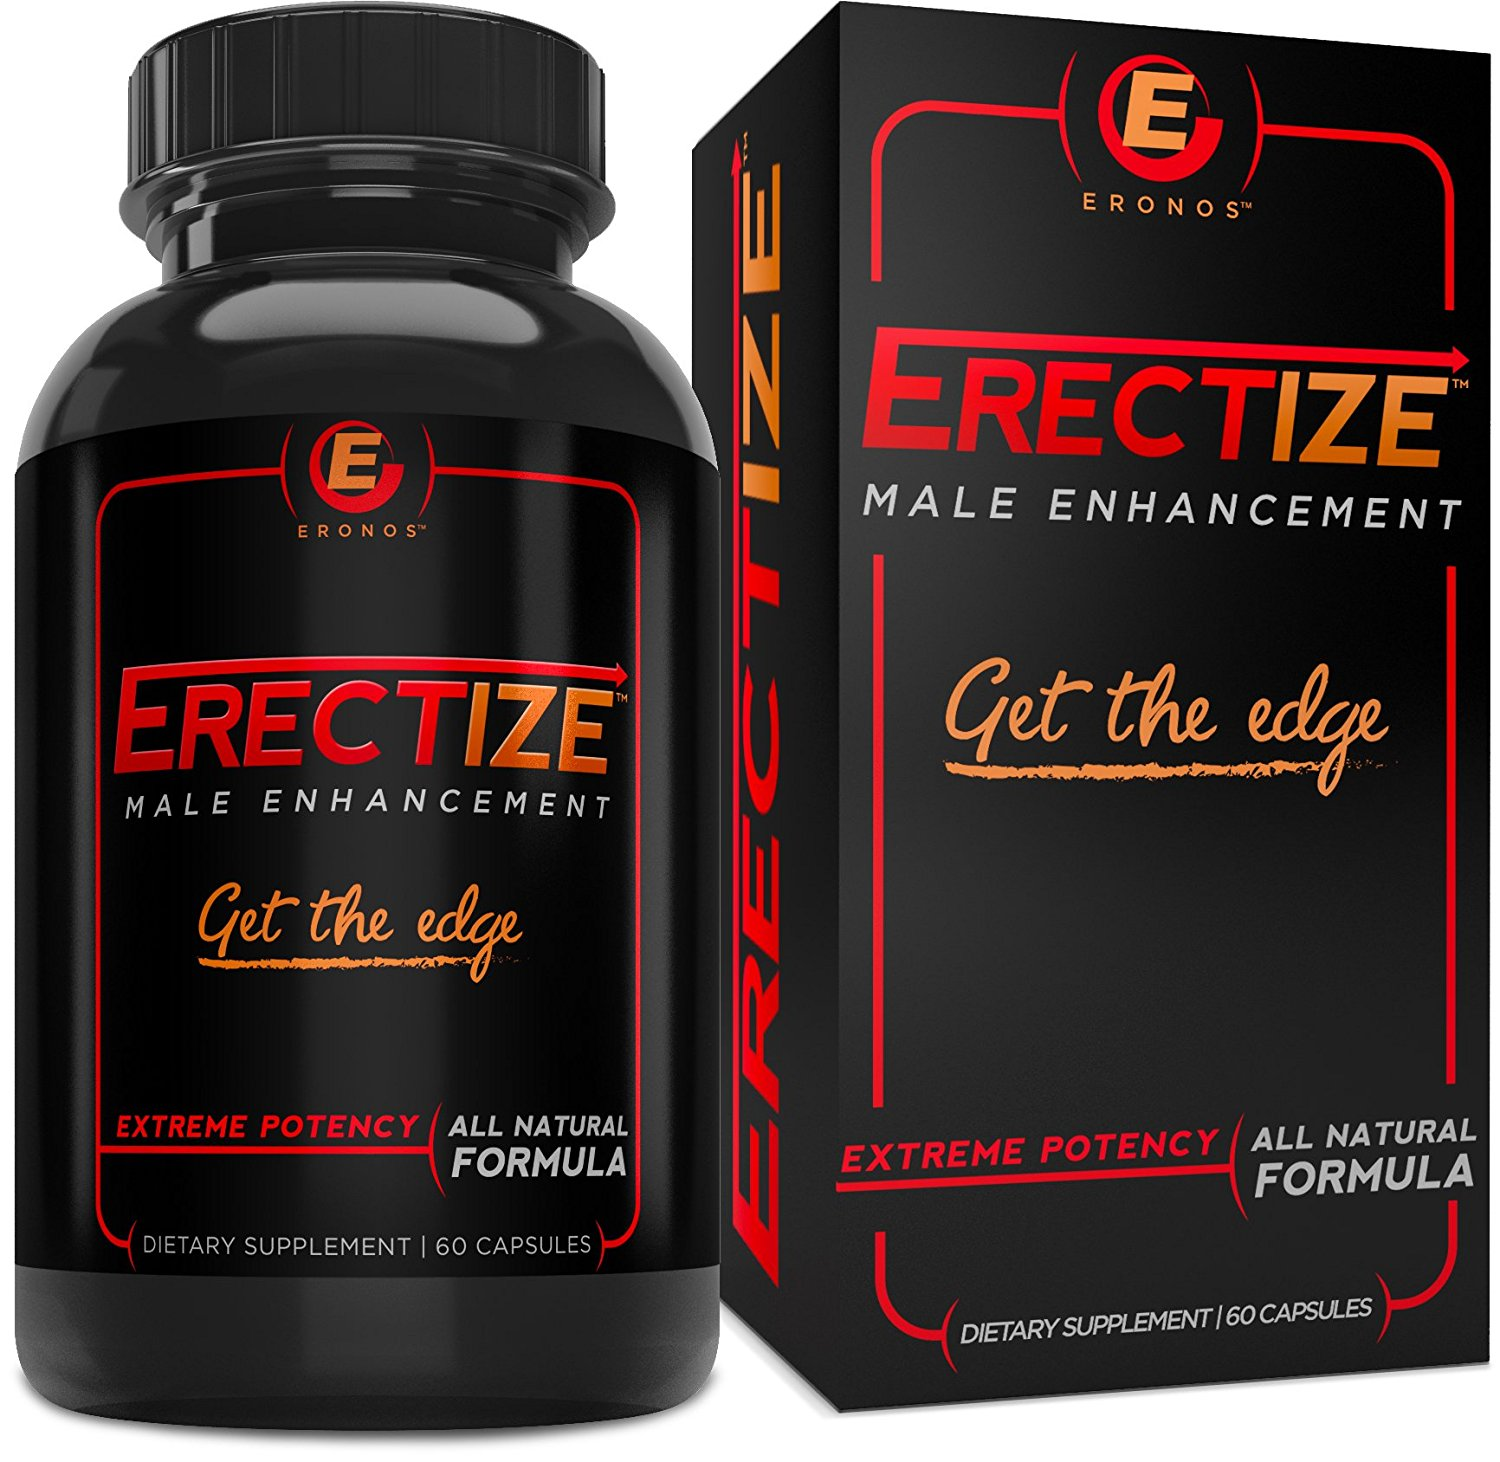 Erectize-Male-Enhancement-Pill.jpg